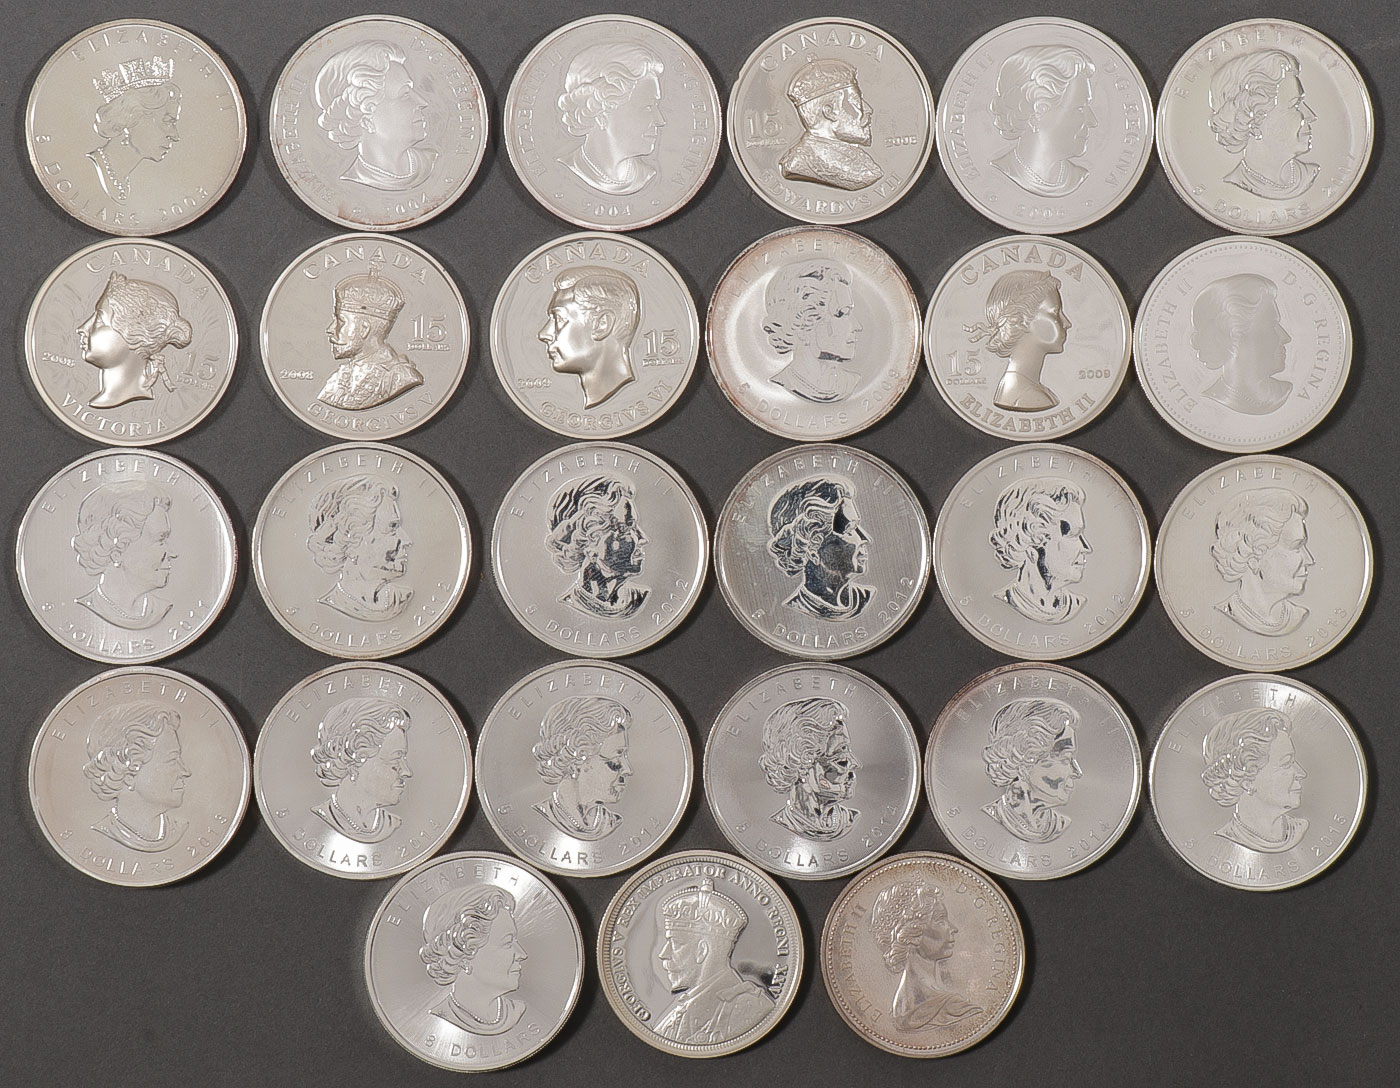 Lot 496 - 27 SILVER CANADIAN COMMEMORATIVES